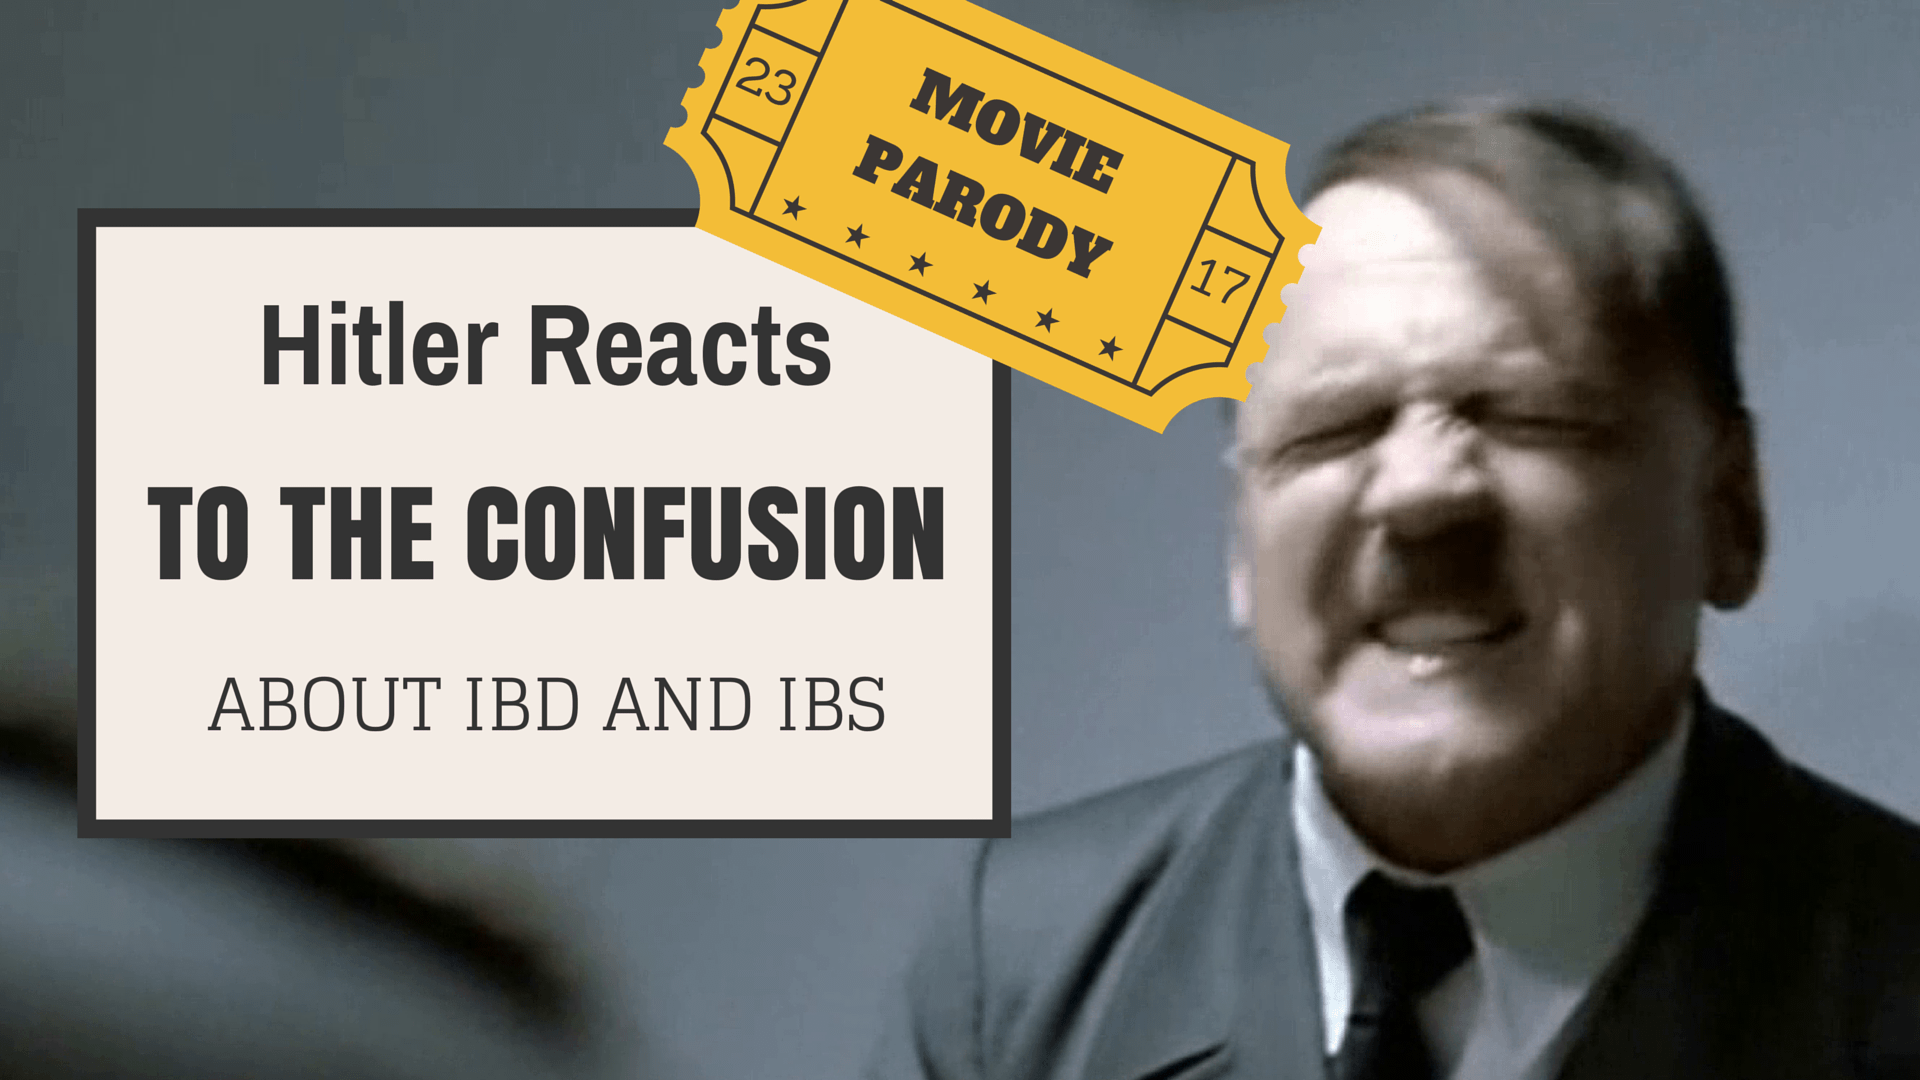 Hitler Reacts to the confusion about IBD and IBS